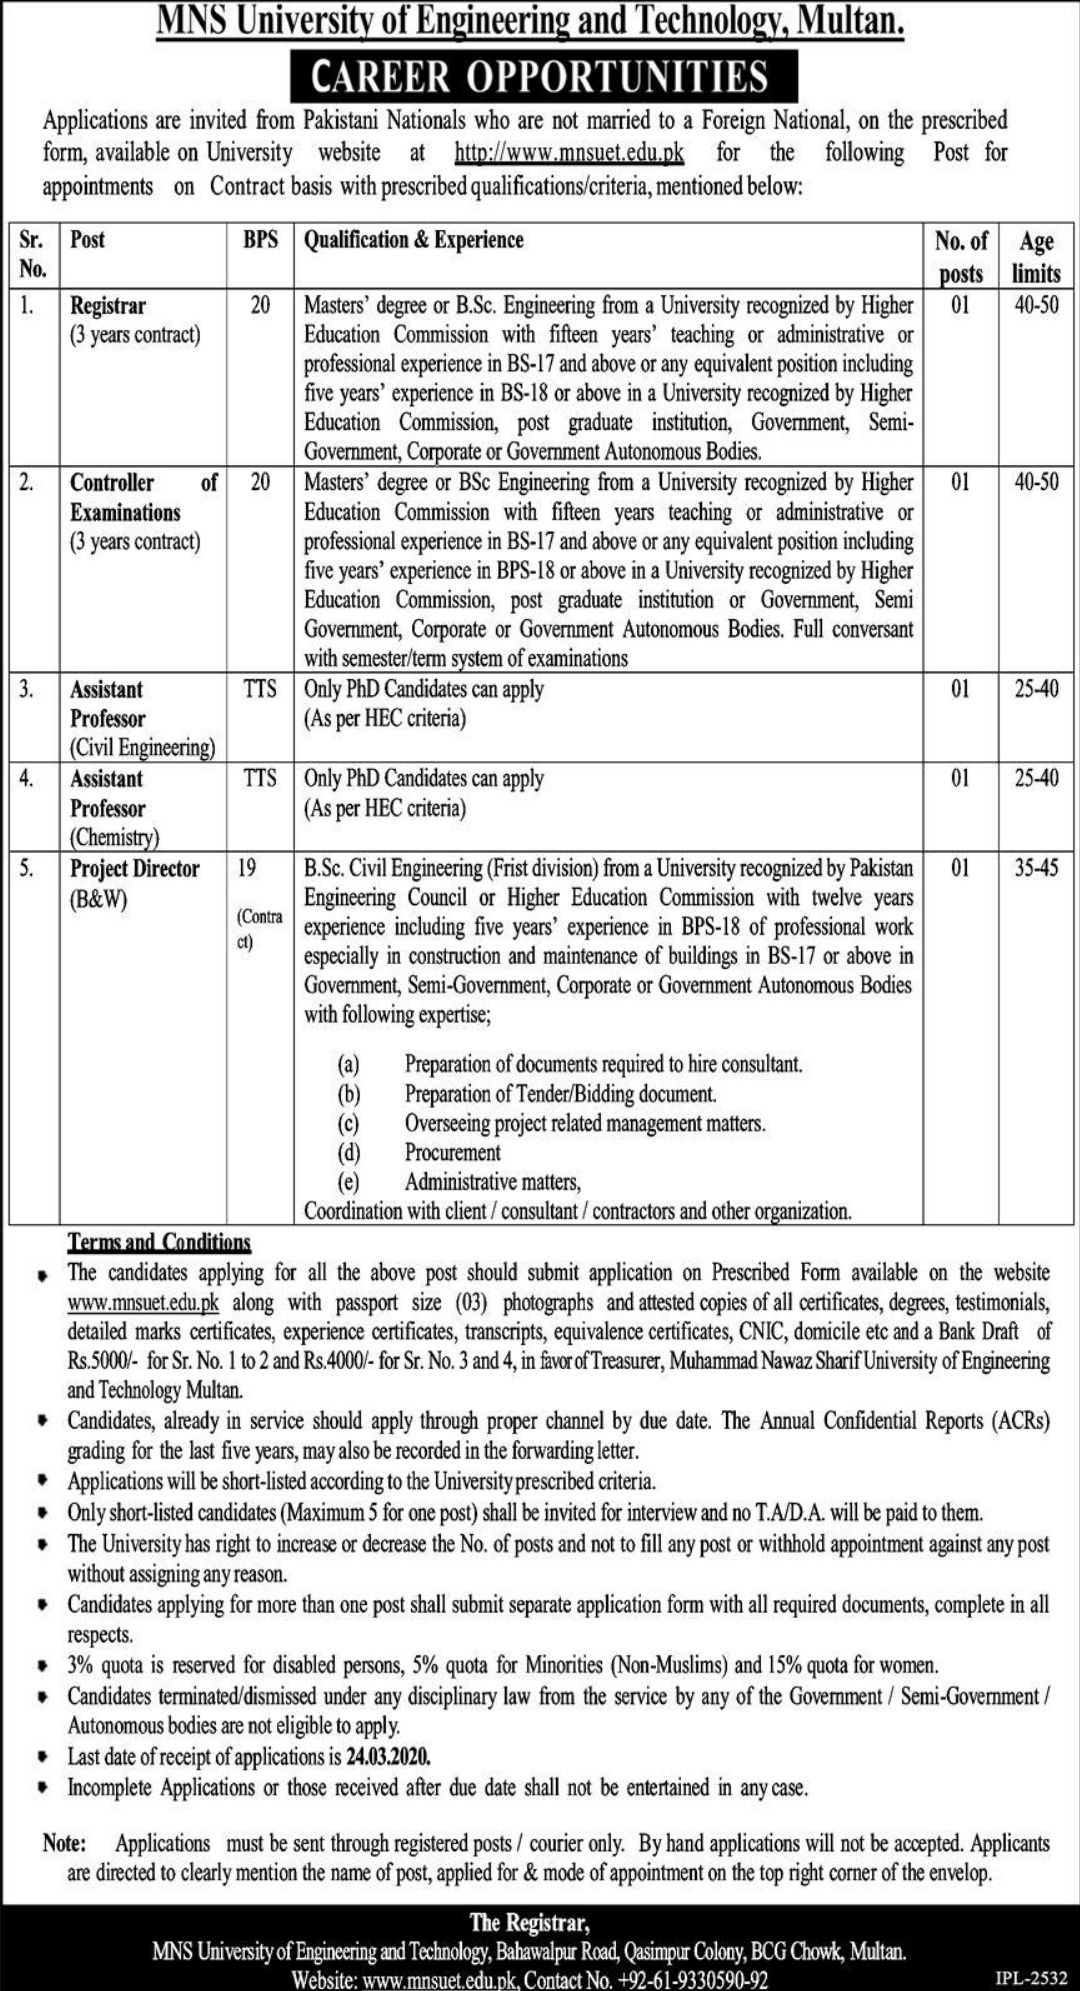 MNS University of Engineering & Technology Multan Jobs 2020